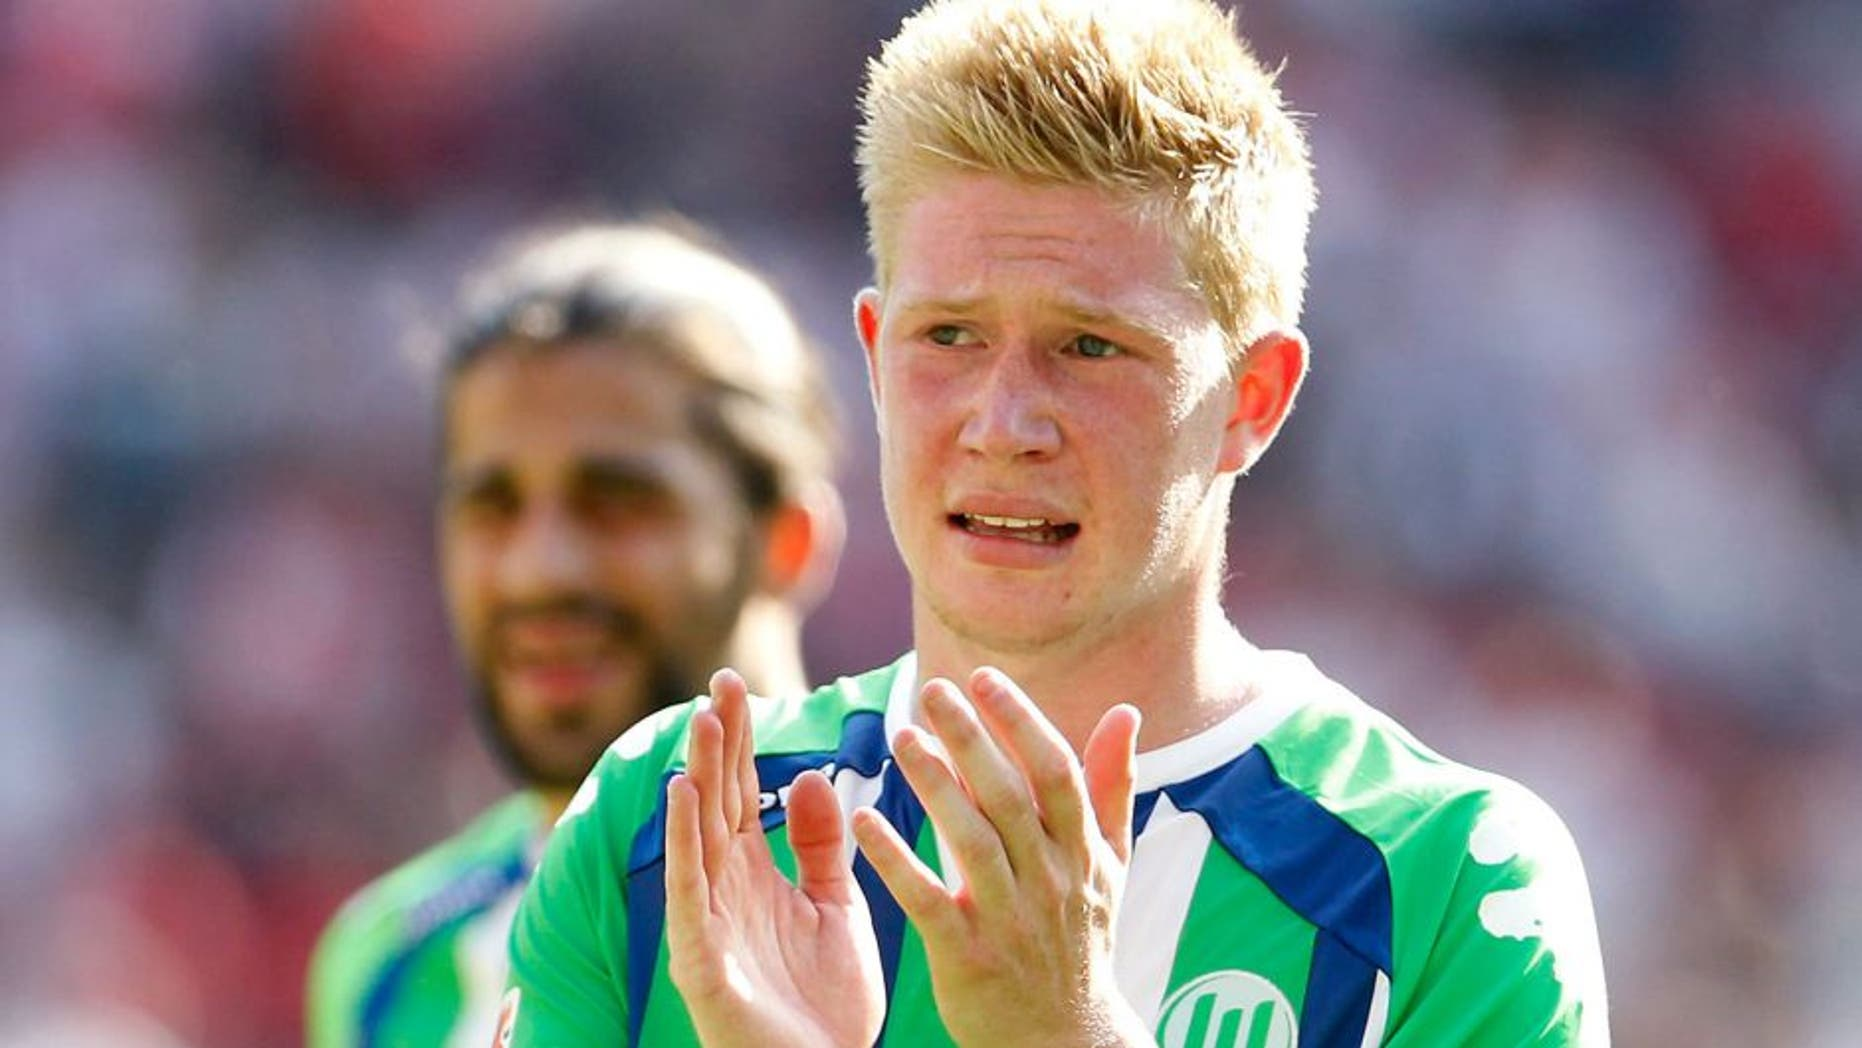 COLOGNE, GERMANY - AUGUST 22: Kevin De Bruyne of Wolfsburg claps after the Bundesliga match between 1. FC Koeln and VfL Wolfsburg at RheinEnergieStadion on August 22, 2015 in Cologne, Germany. (Photo by Mika Volkmann/Bongarts/Getty Images)